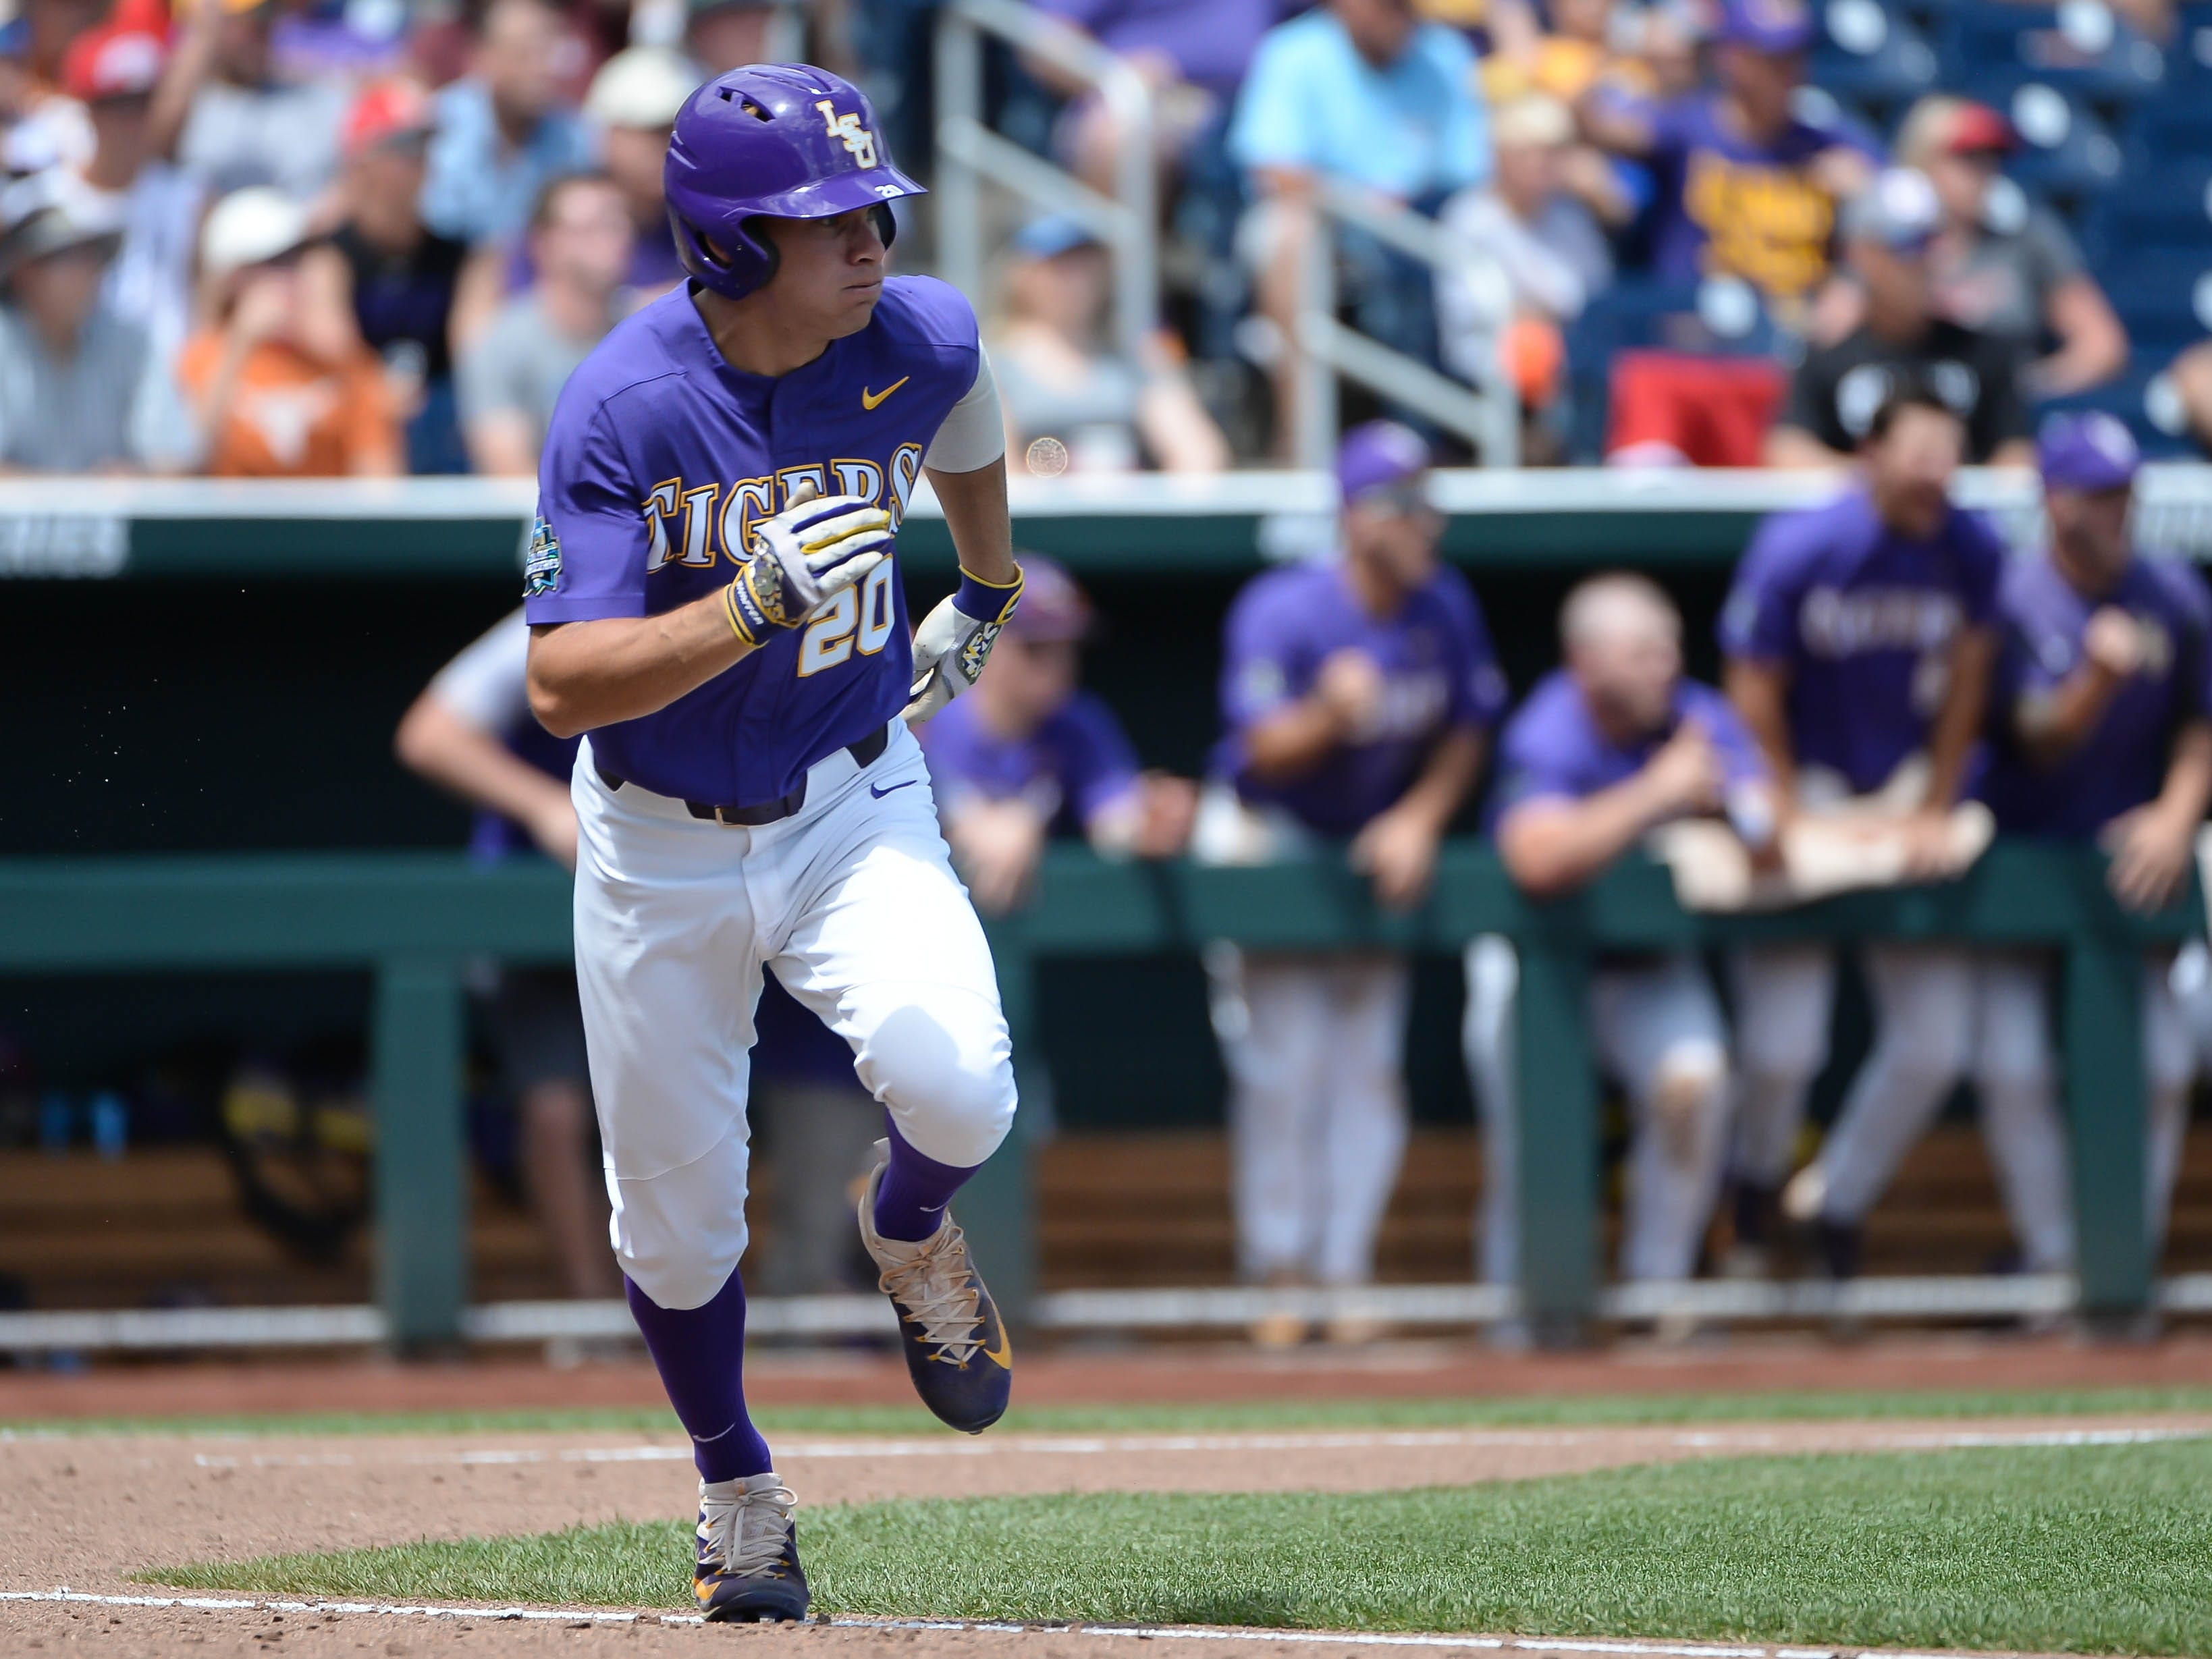 Duplantis' home run lifts LSU to Game 3 win